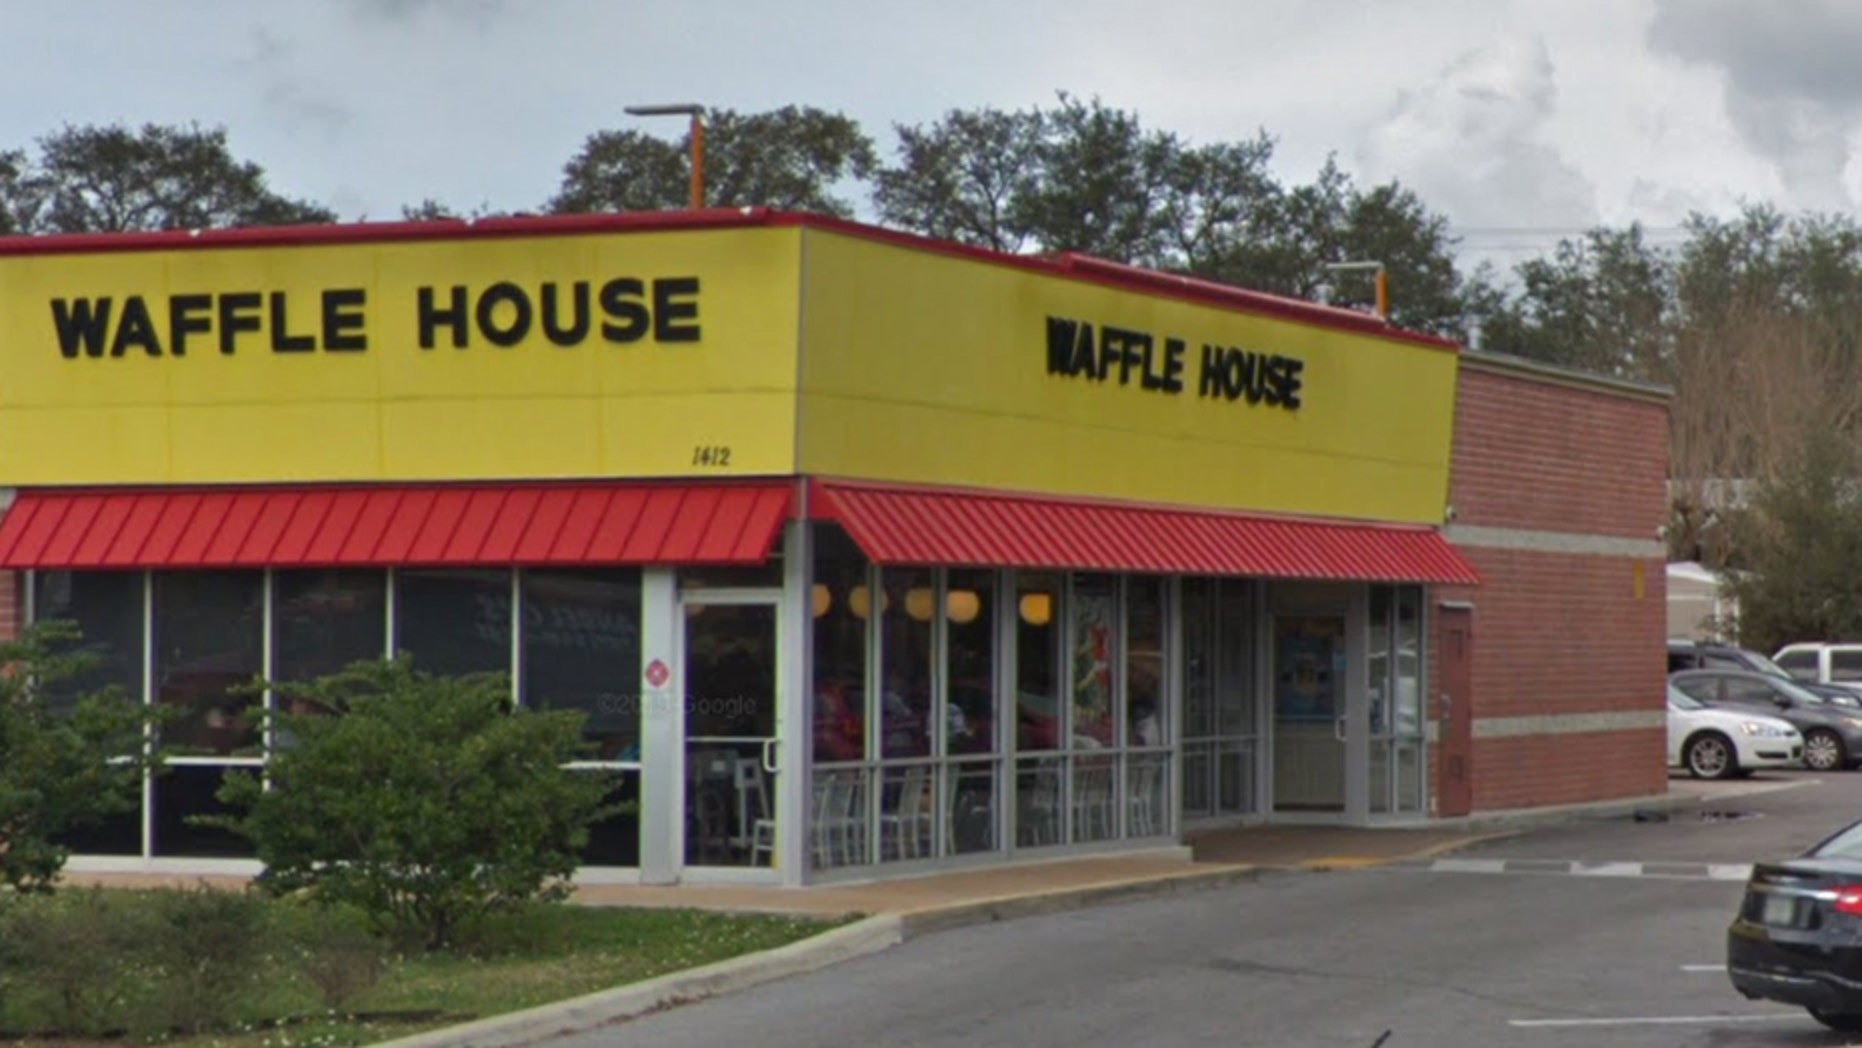 The Waffle House where the accident occurred.